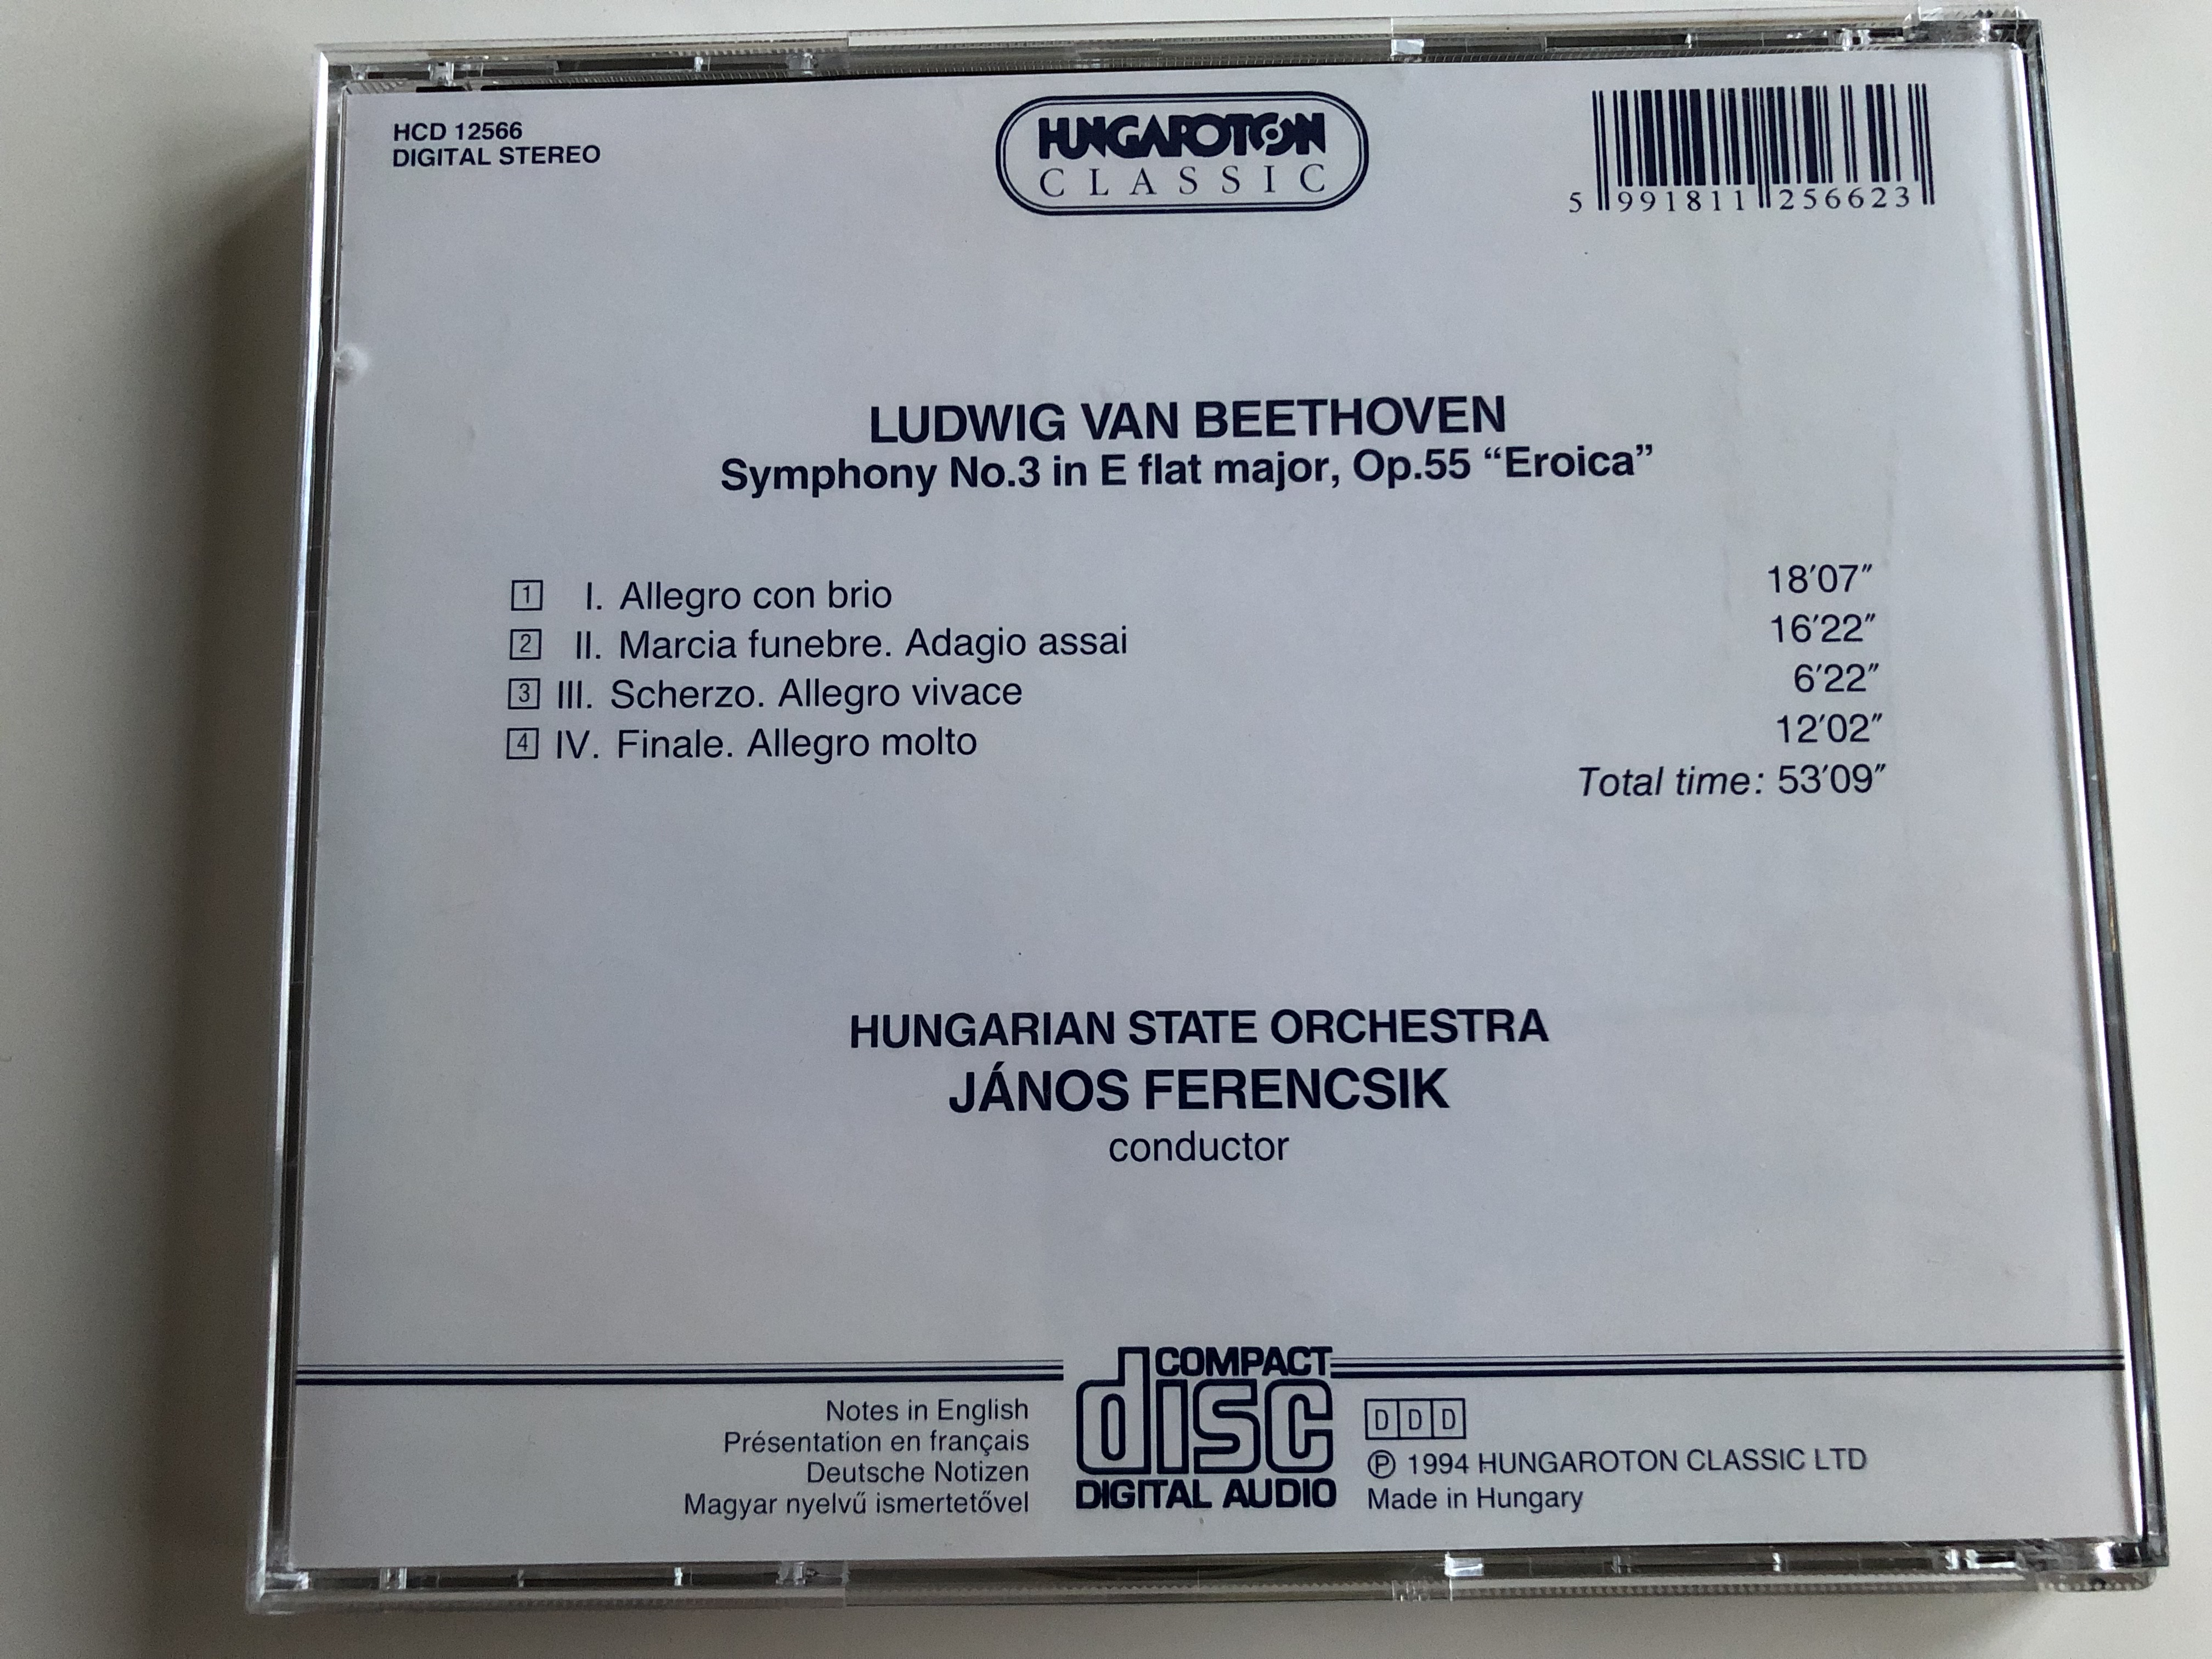 beethoven-symphony-no.-3-eroica-audio-cd-1994-hungarian-state-orchestra-conducted-by-j-nos-ferencsik-hungaroton-classic-hcd-12566-5-.jpg